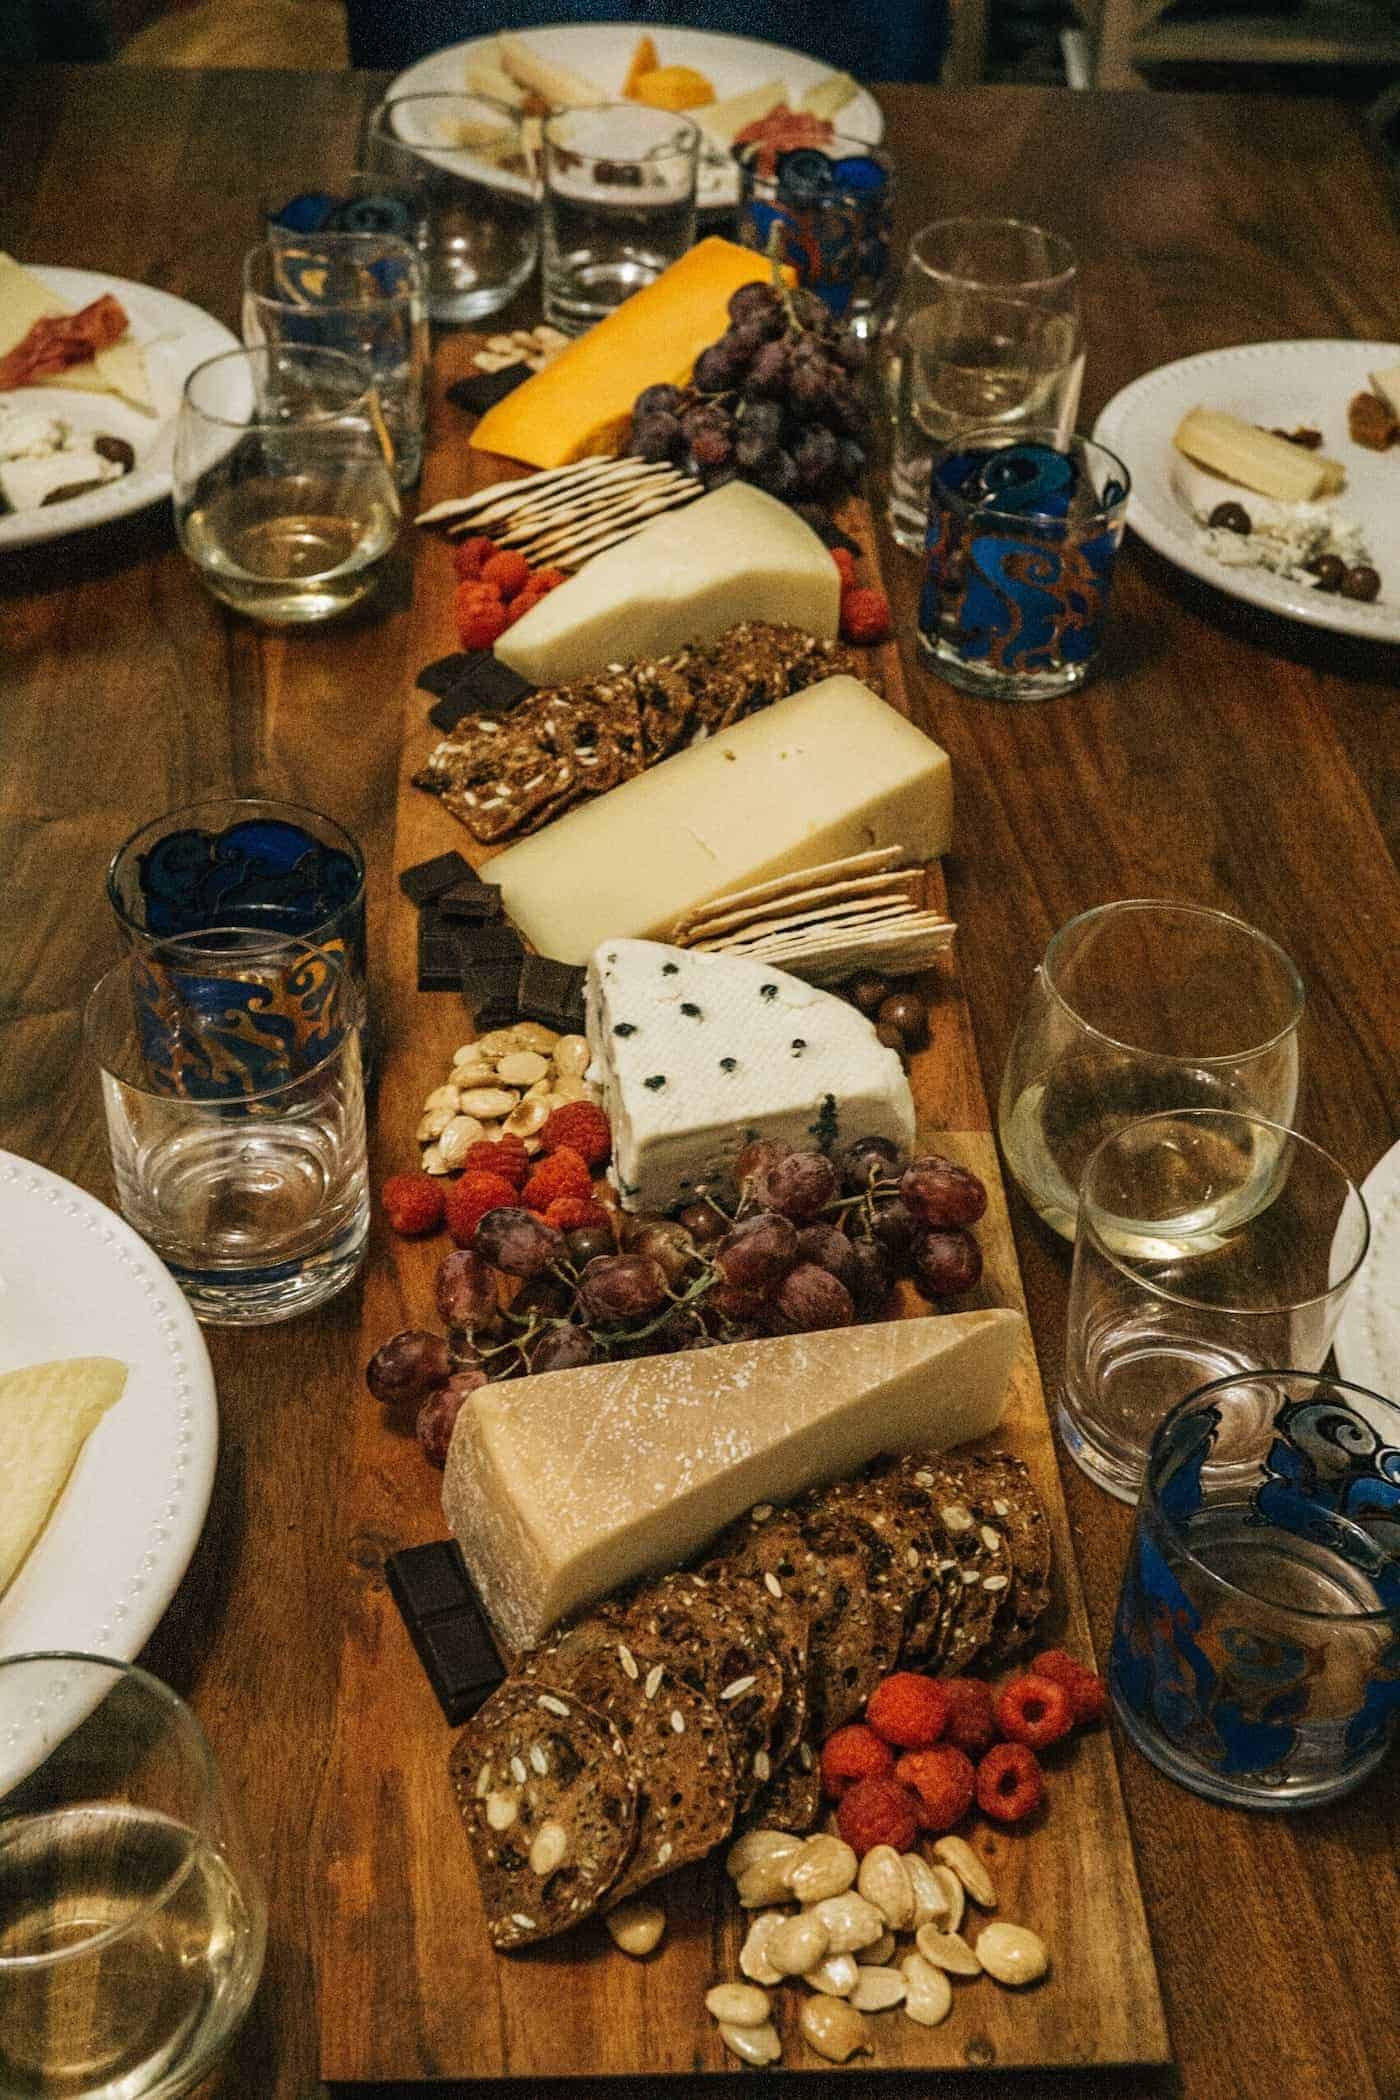 Channing and the cheese plate